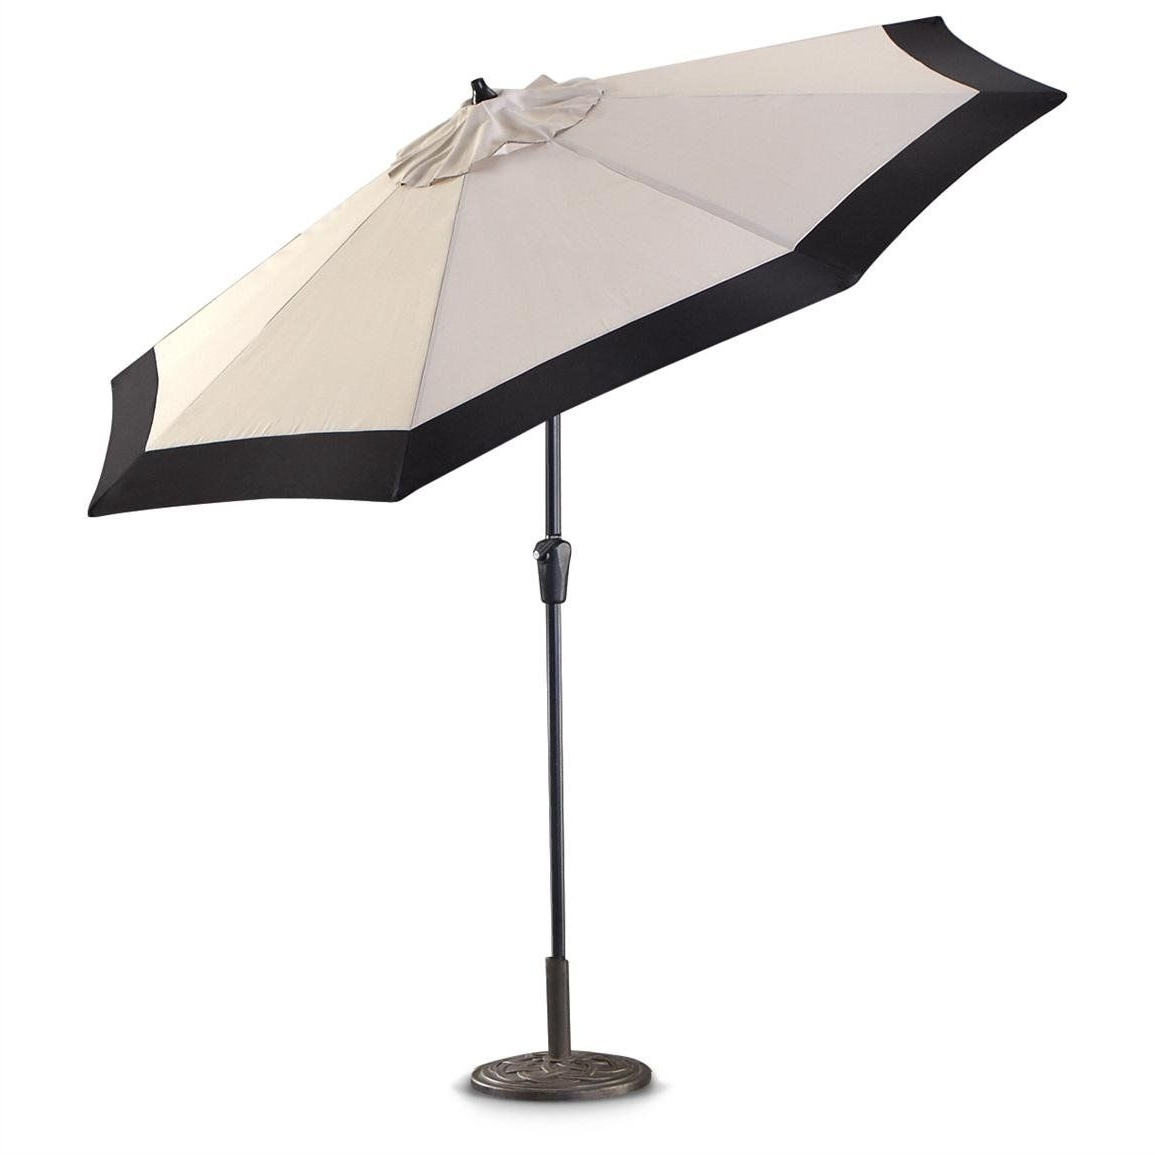 Popular White Patio Umbrellas #5: Castlecreek 9 Two Tone Deluxe Market Patio Regarding Black And White Patio Umbrellas (View 3 of 20)